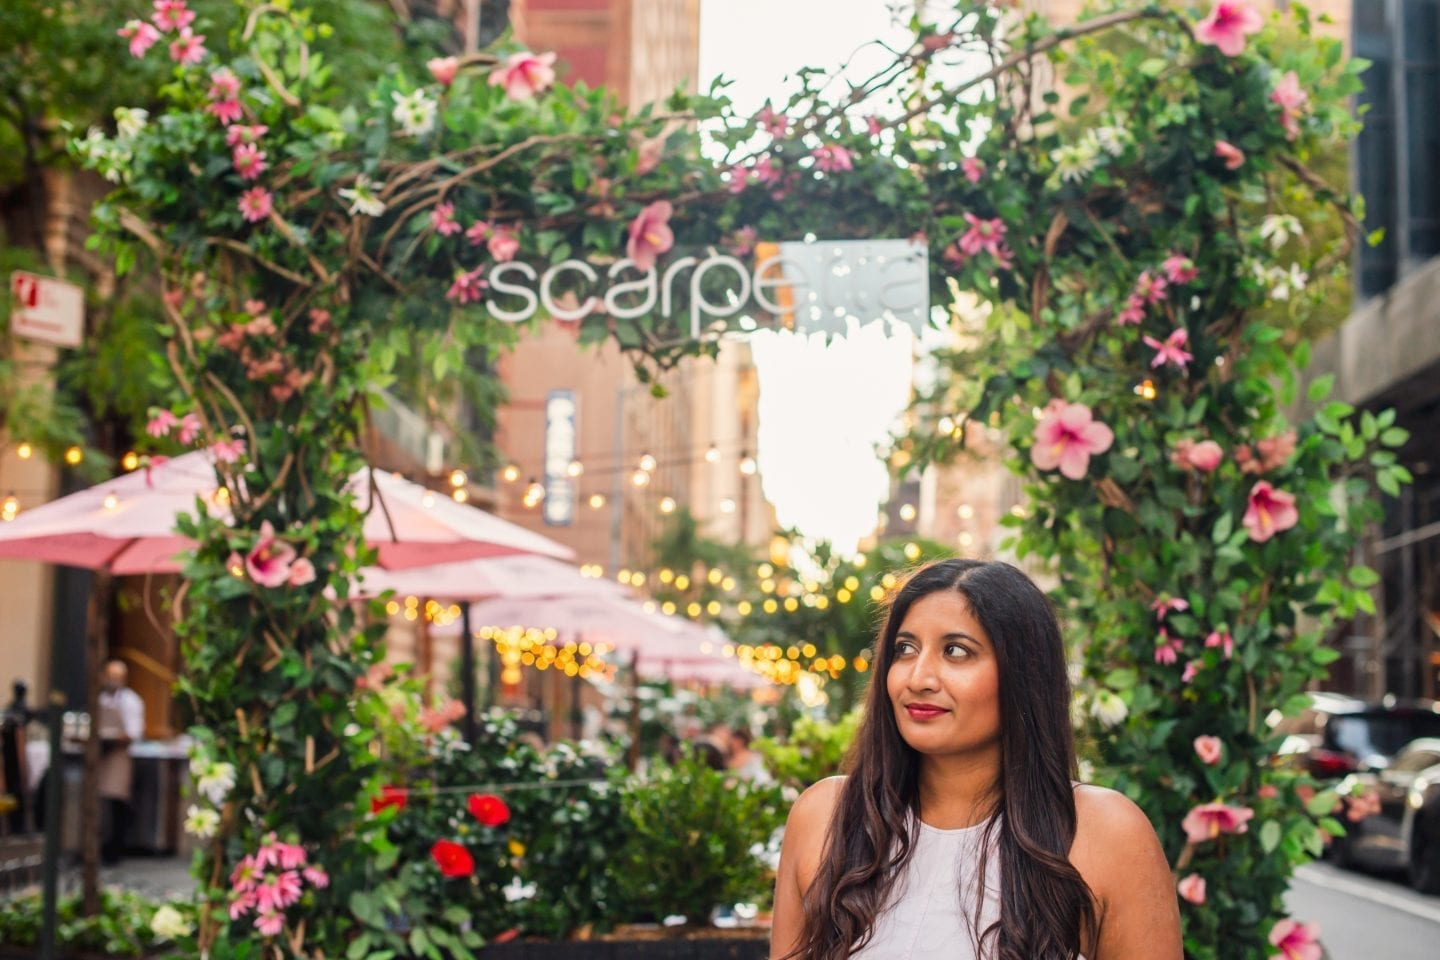 Enjoy Beautiful Outdoor Dining in NYC at Scarpetta